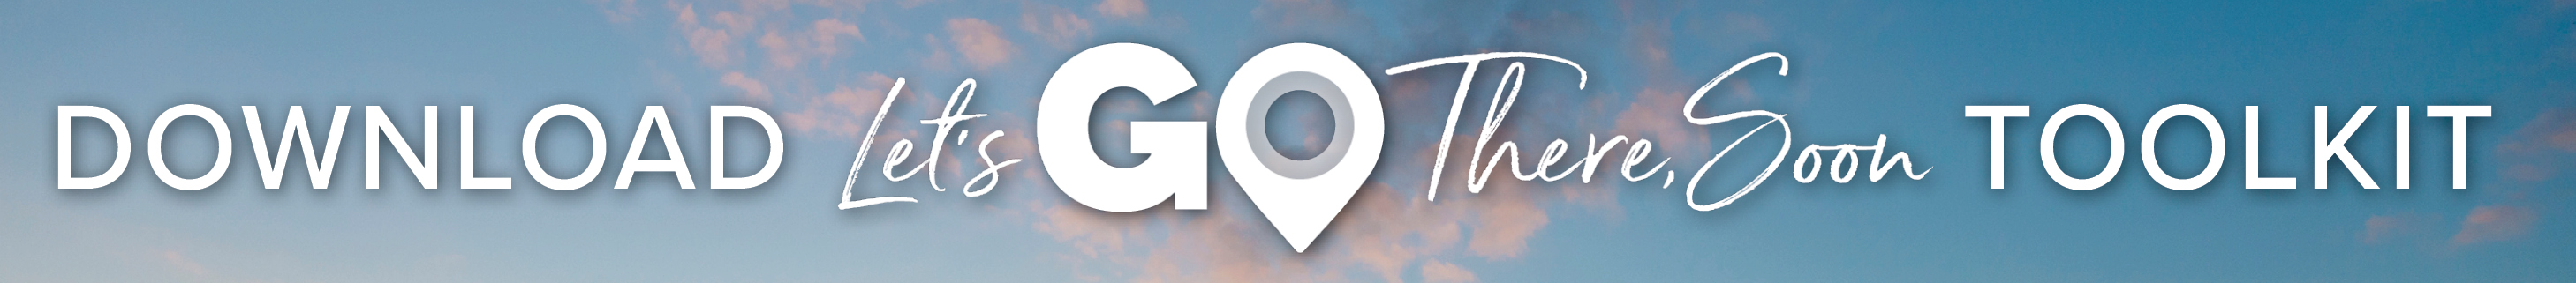 Download Let's Go There Soon Toolkit